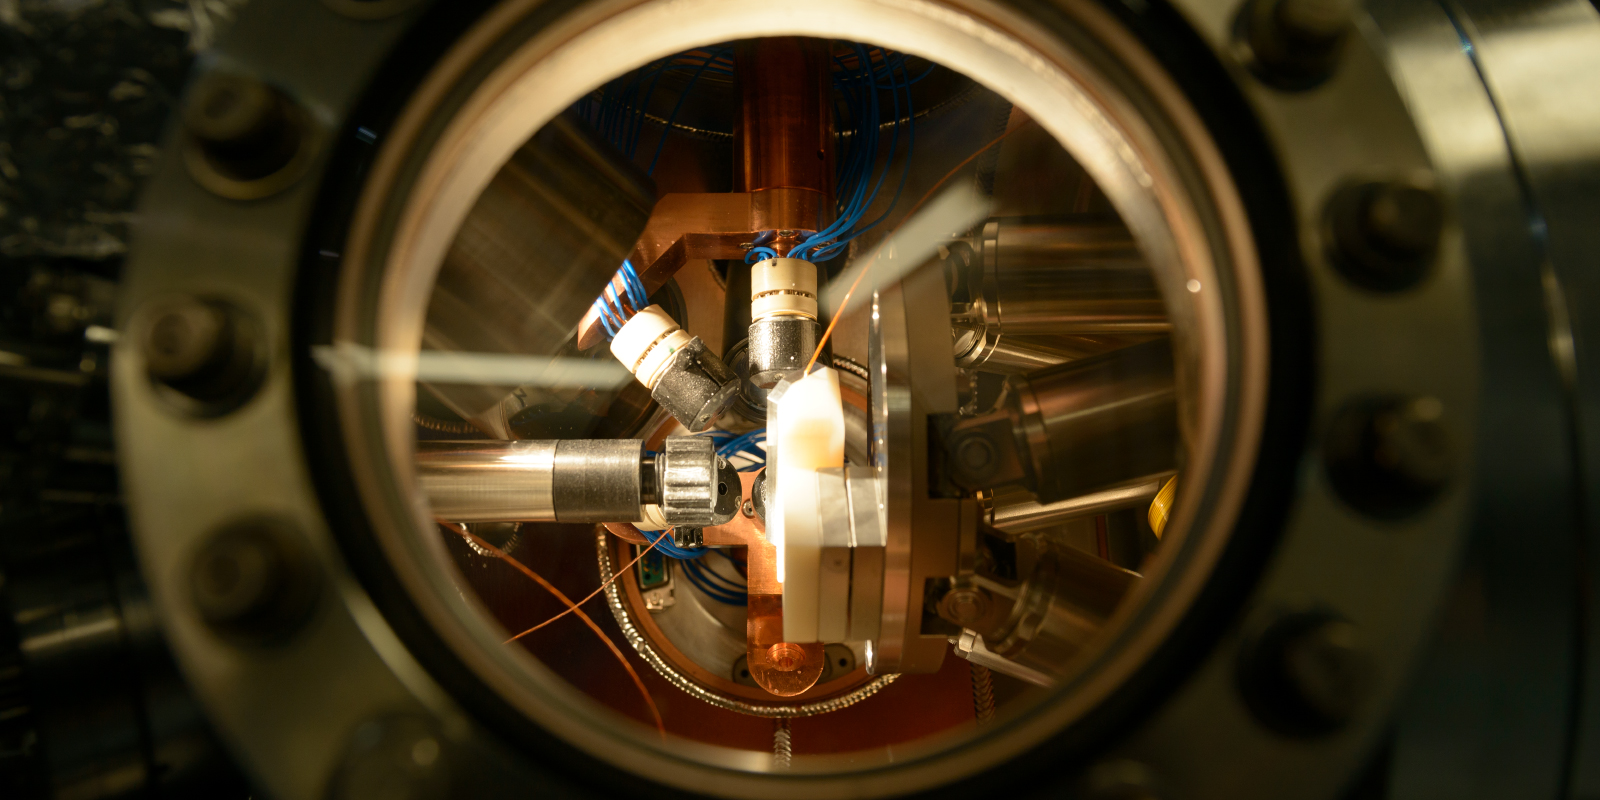 RMD---Industries---Synchrotron-Components.jpg